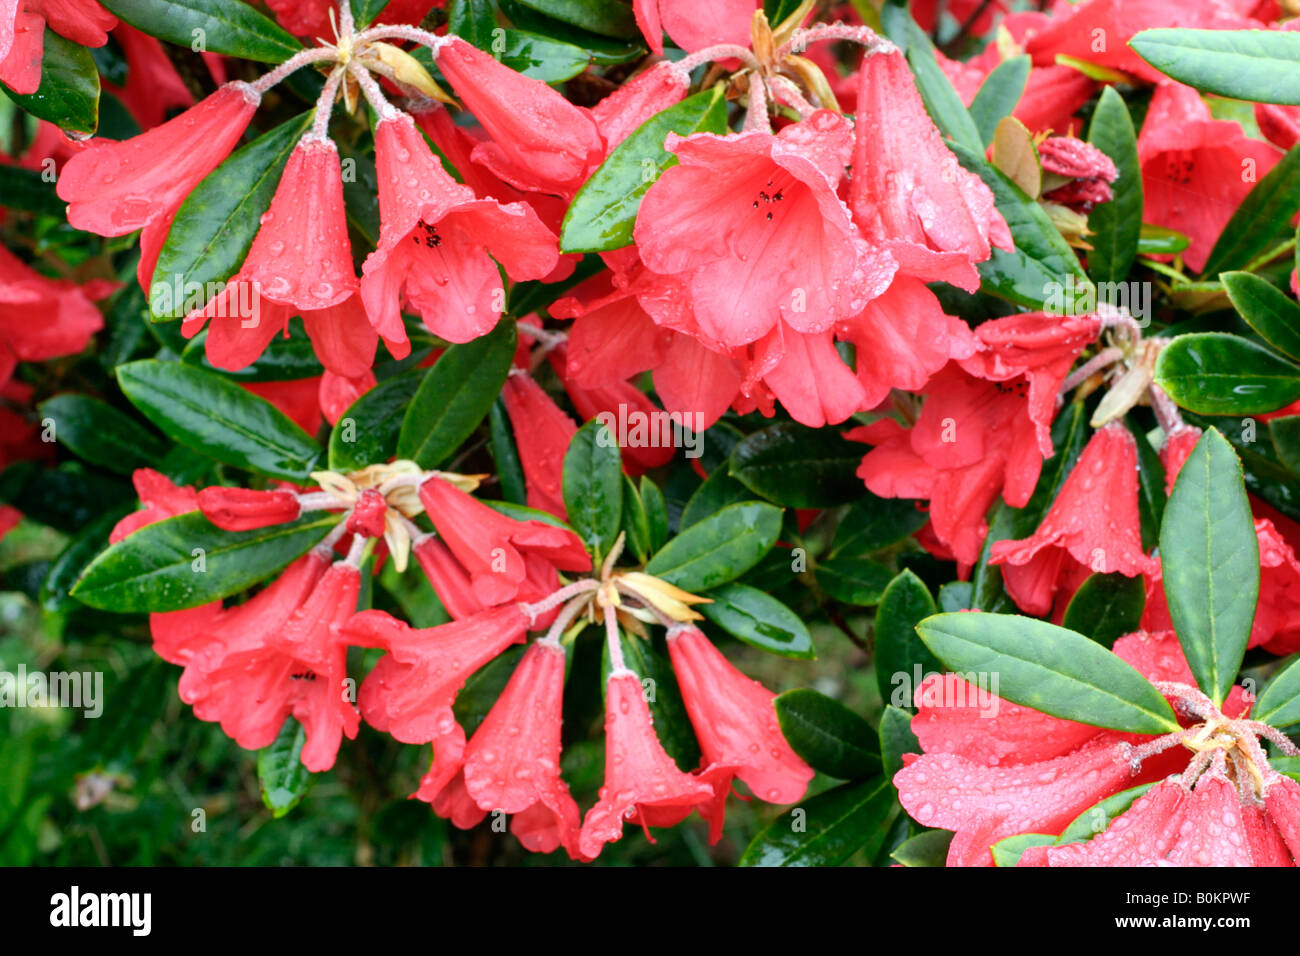 RHODODENDRON MAY DAY Stock Photo